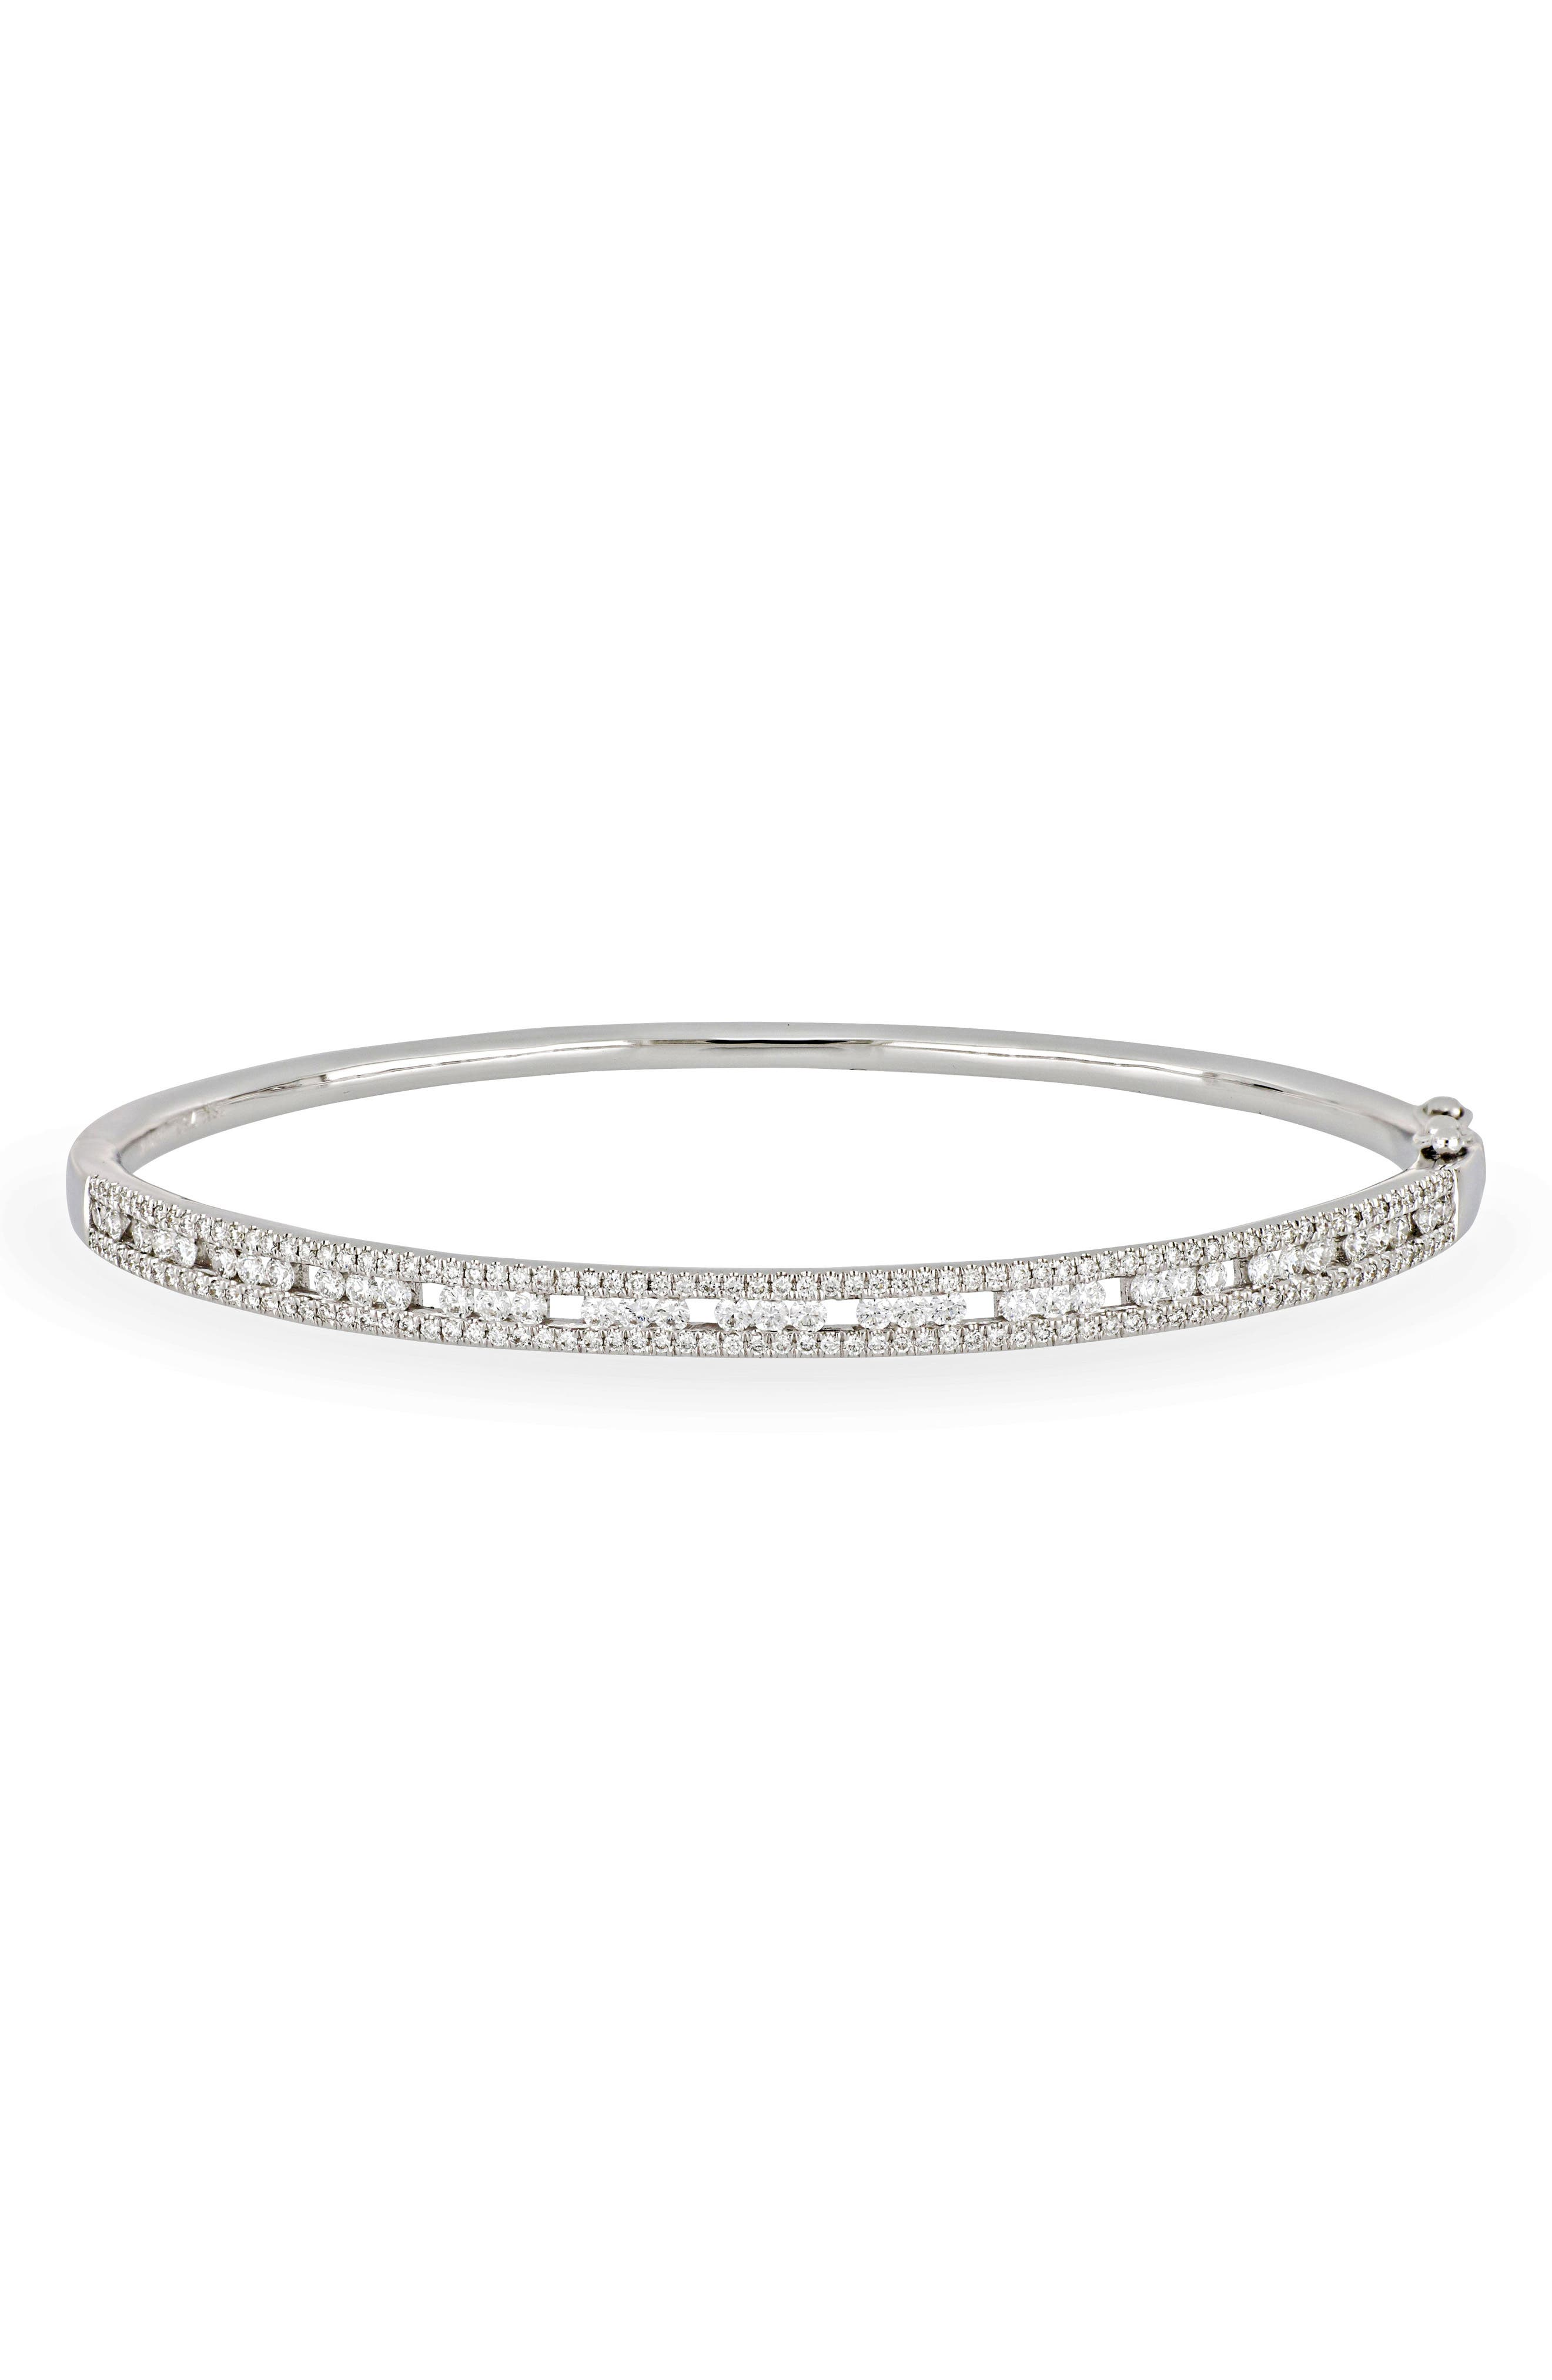 Amara Deluxe Hinge Bangle,                         Main,                         color, WHITE GOLD